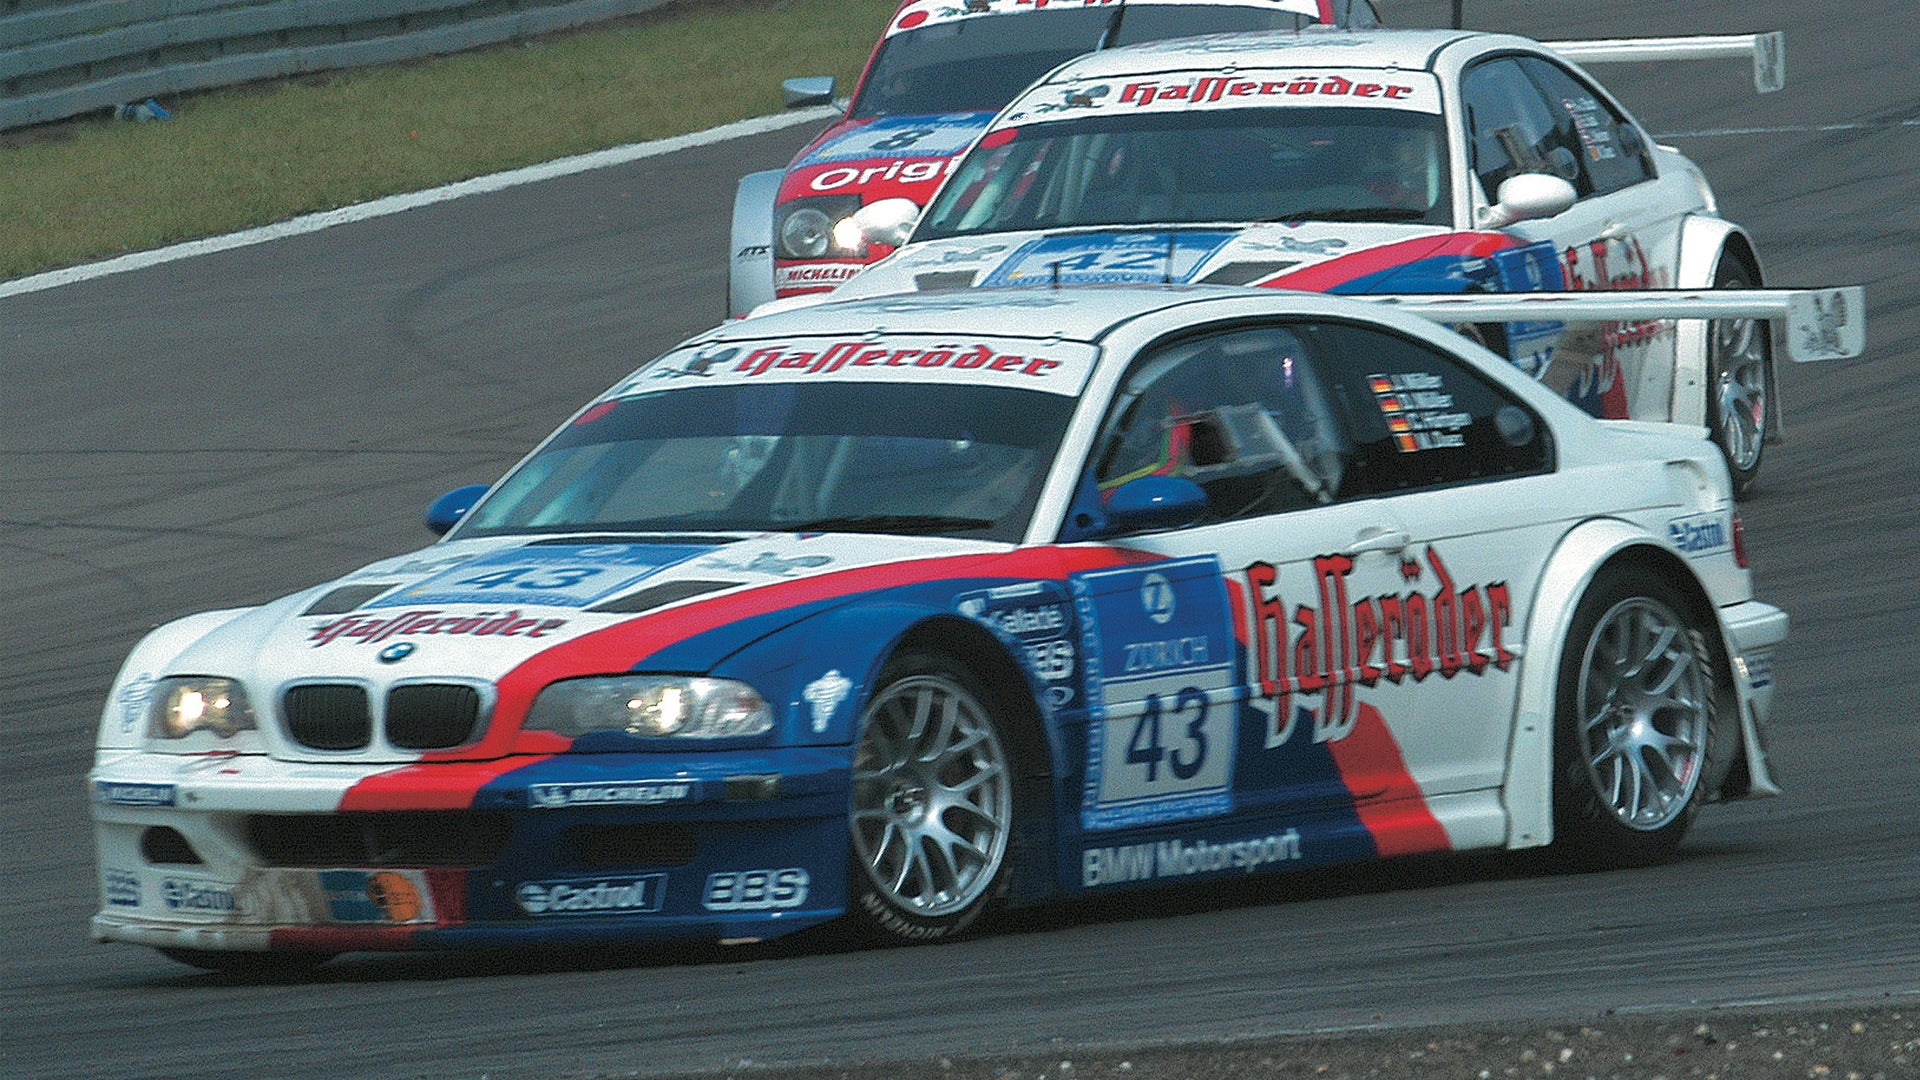 The Hans Stuck M3 GTR Nürburgring Lap Is the Only One That Matters